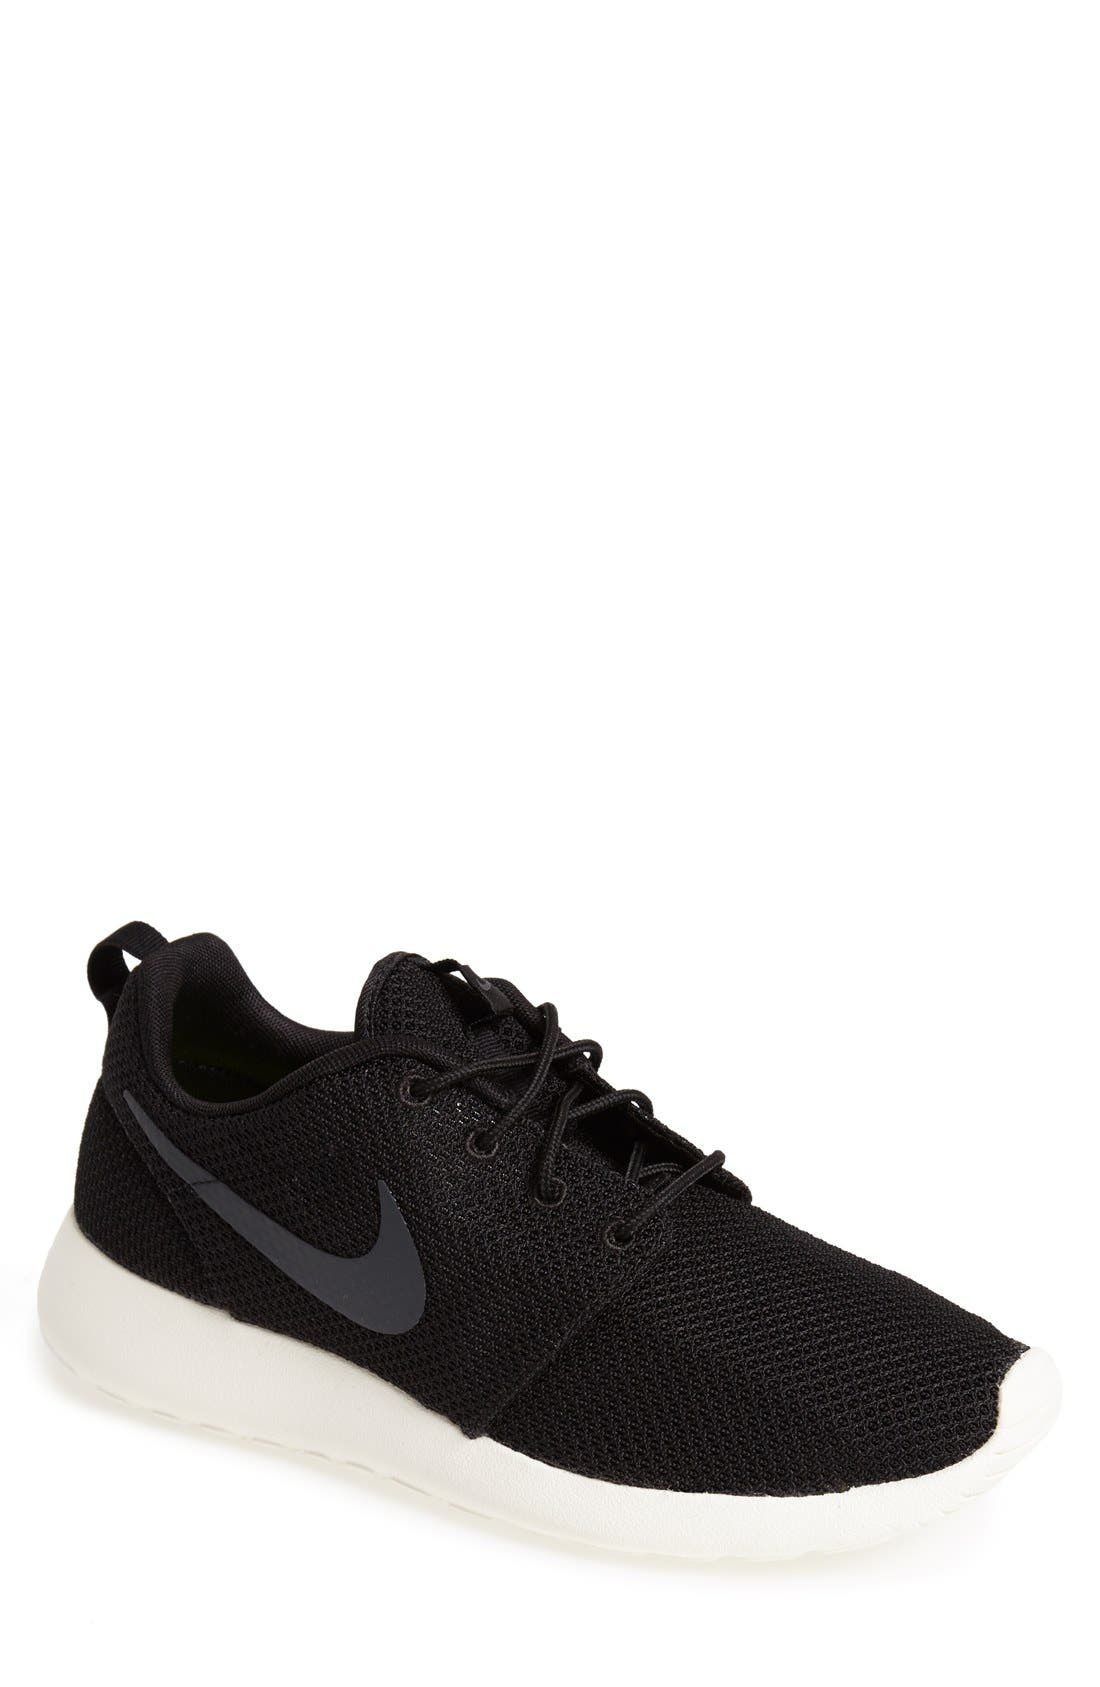 'Roshe Run' Sneaker,                         Main,                         color, Black/ Anthracite/ Sail